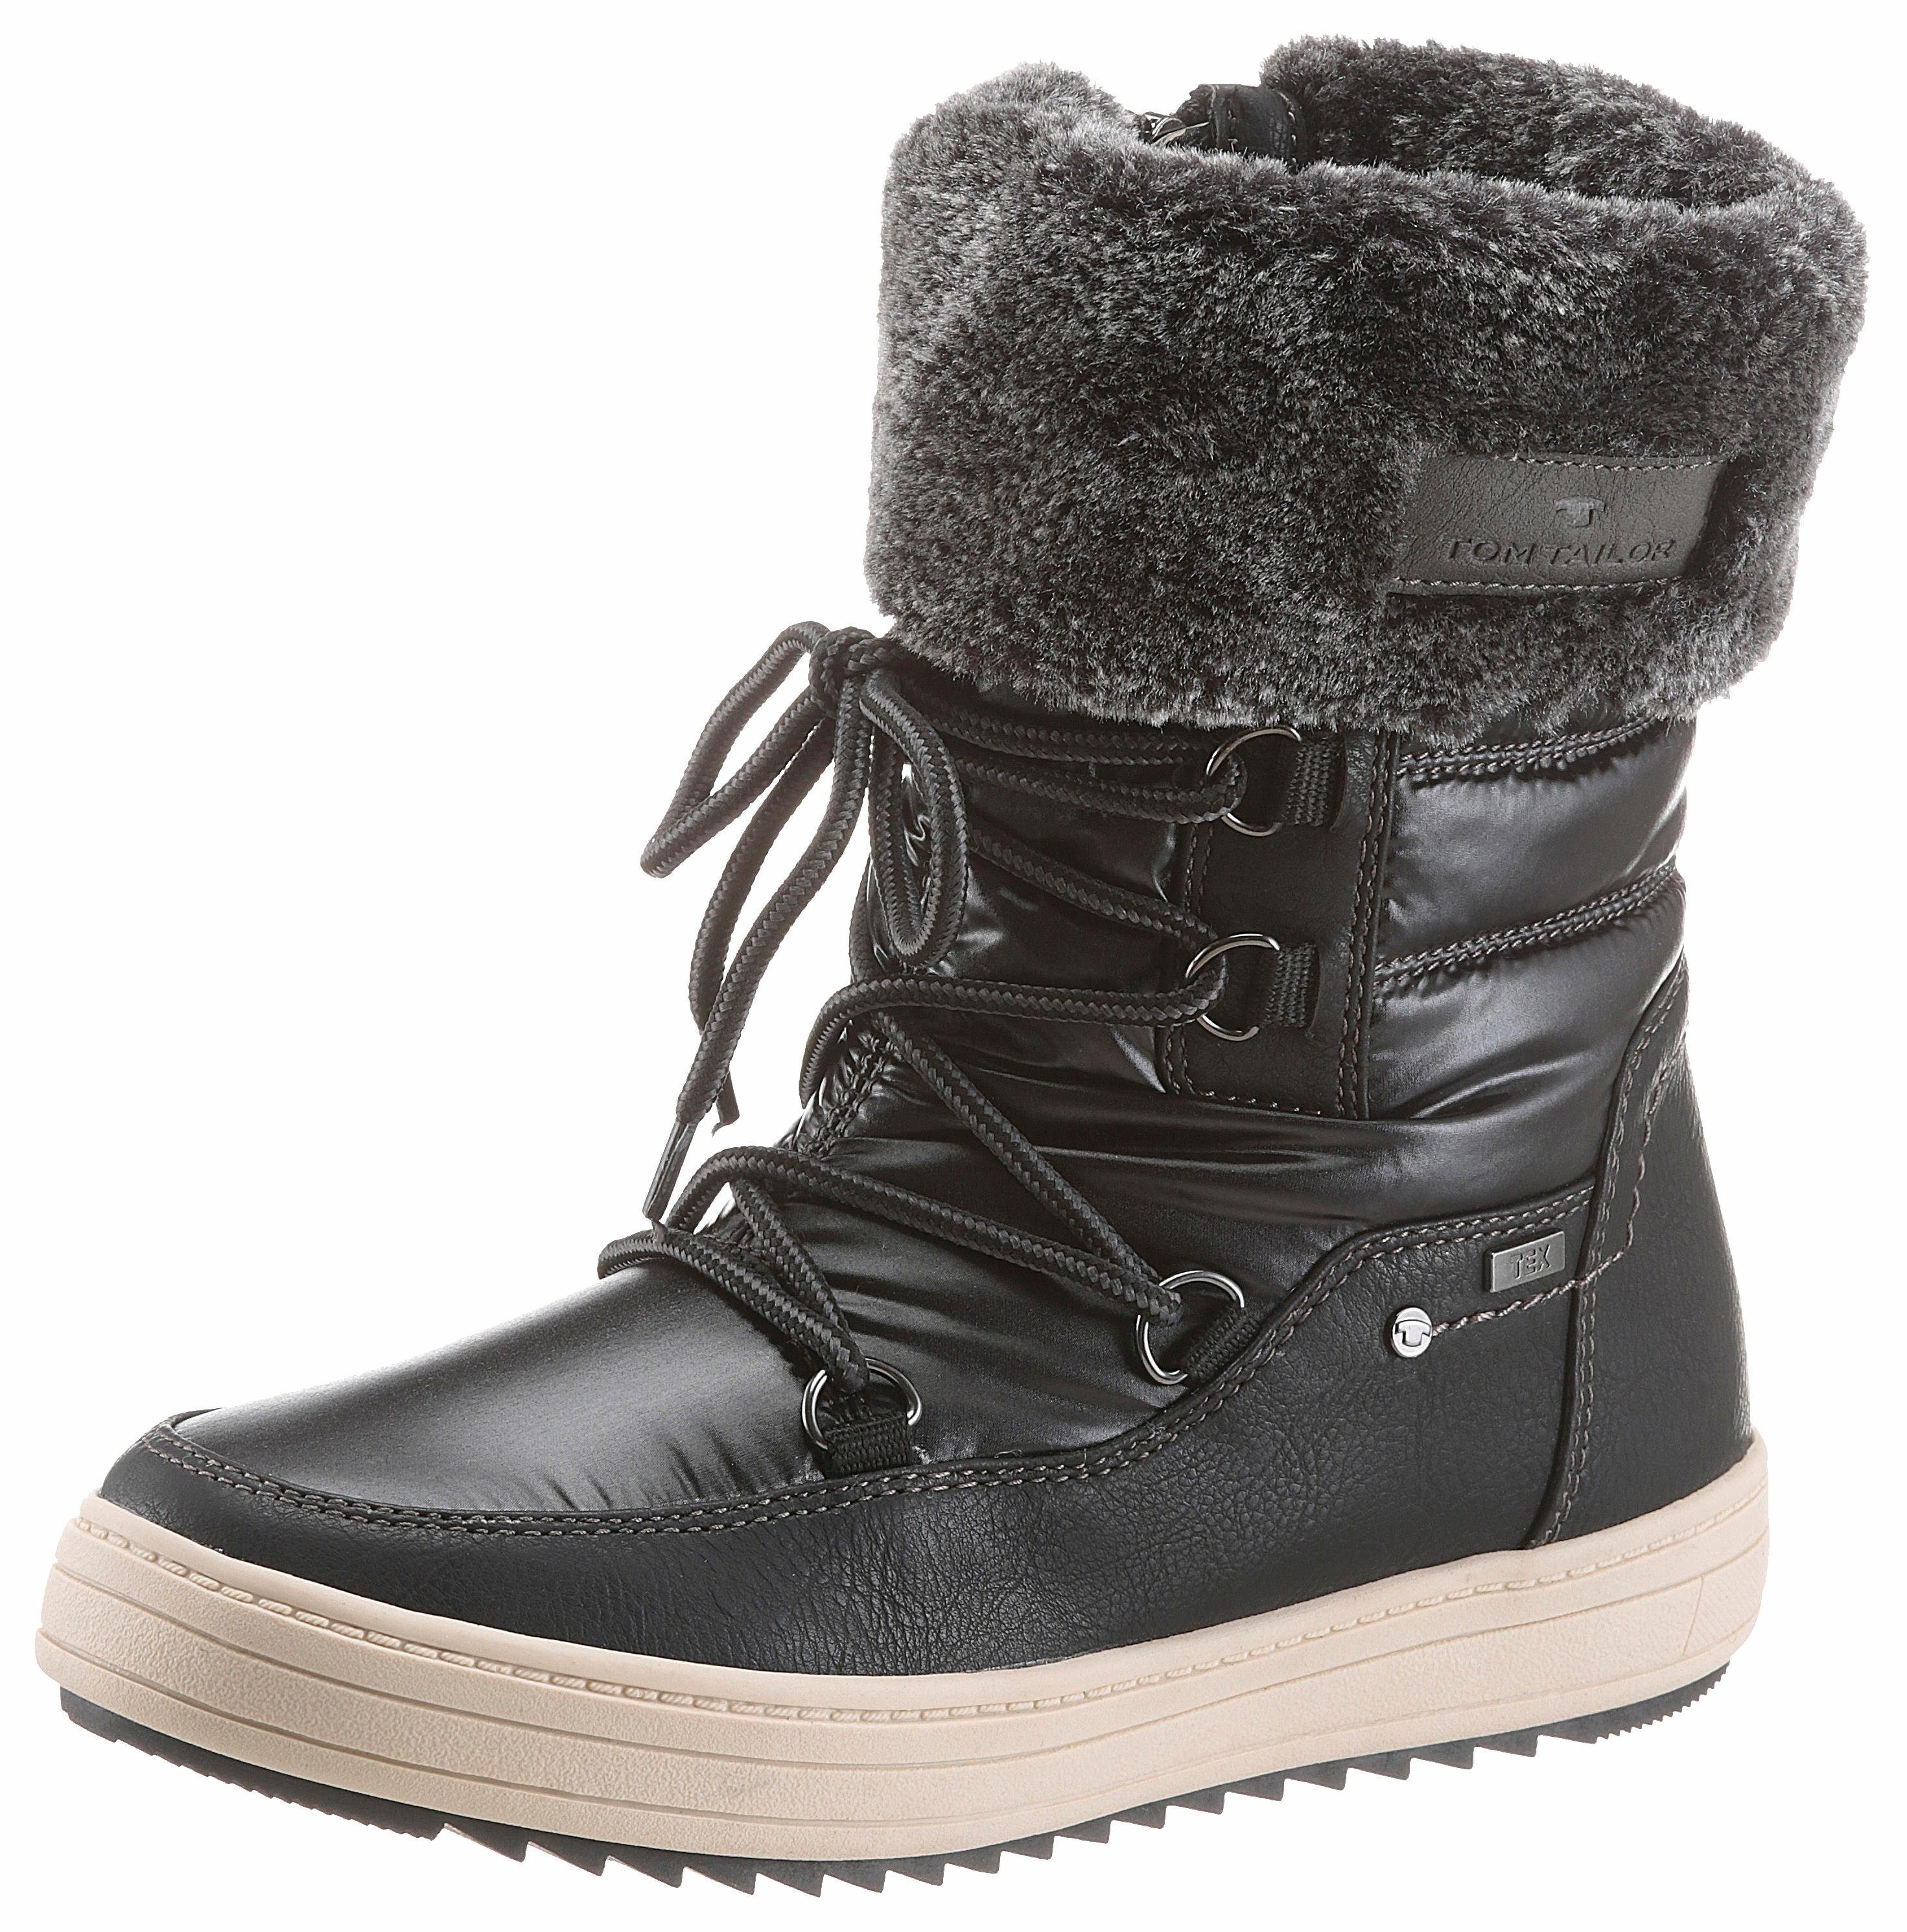 Tom Tailor TEX-Boots n8oJDtR0N